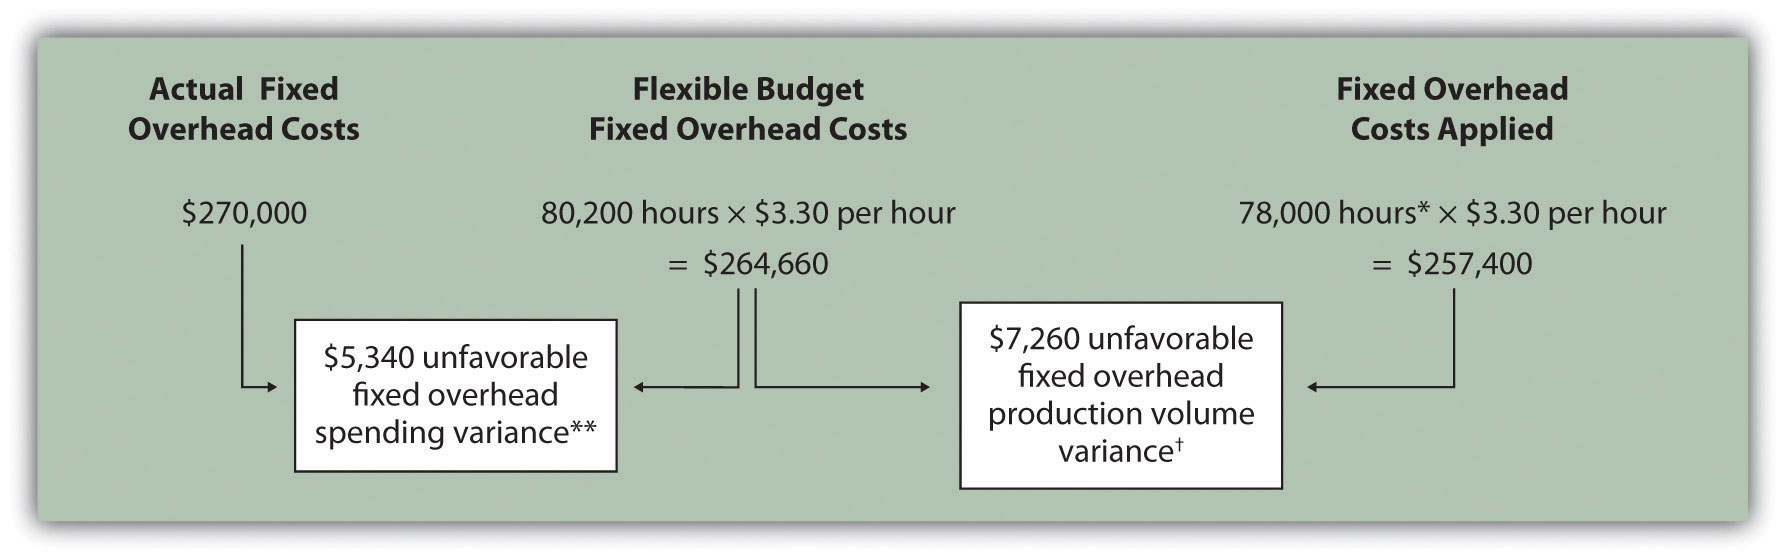 Fixed Manufacturing Overhead Variance Analysis